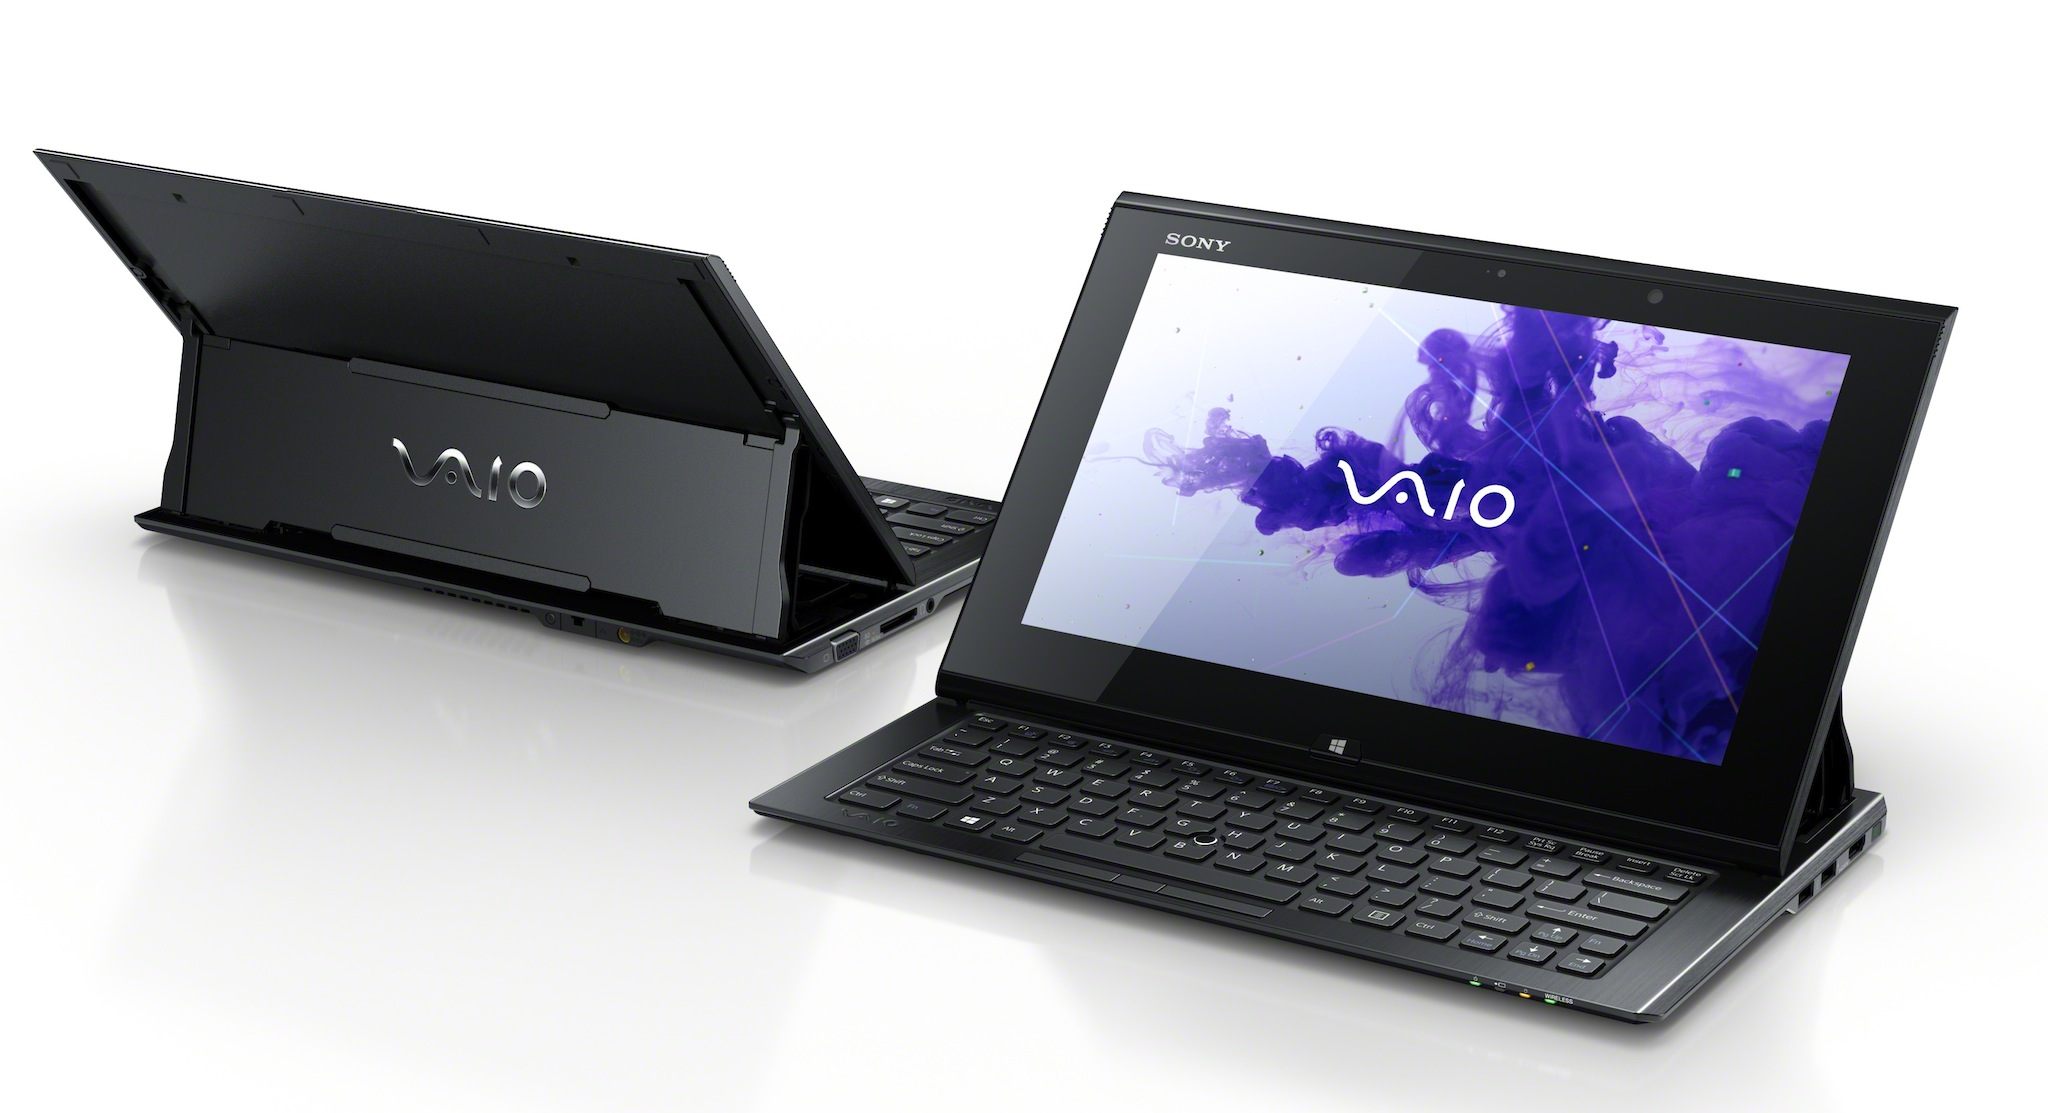 The Vaio Duo 11 measures 320mm x 17.85mm x 199mm and weighs about 1.3kg, or 2.87 pounds.